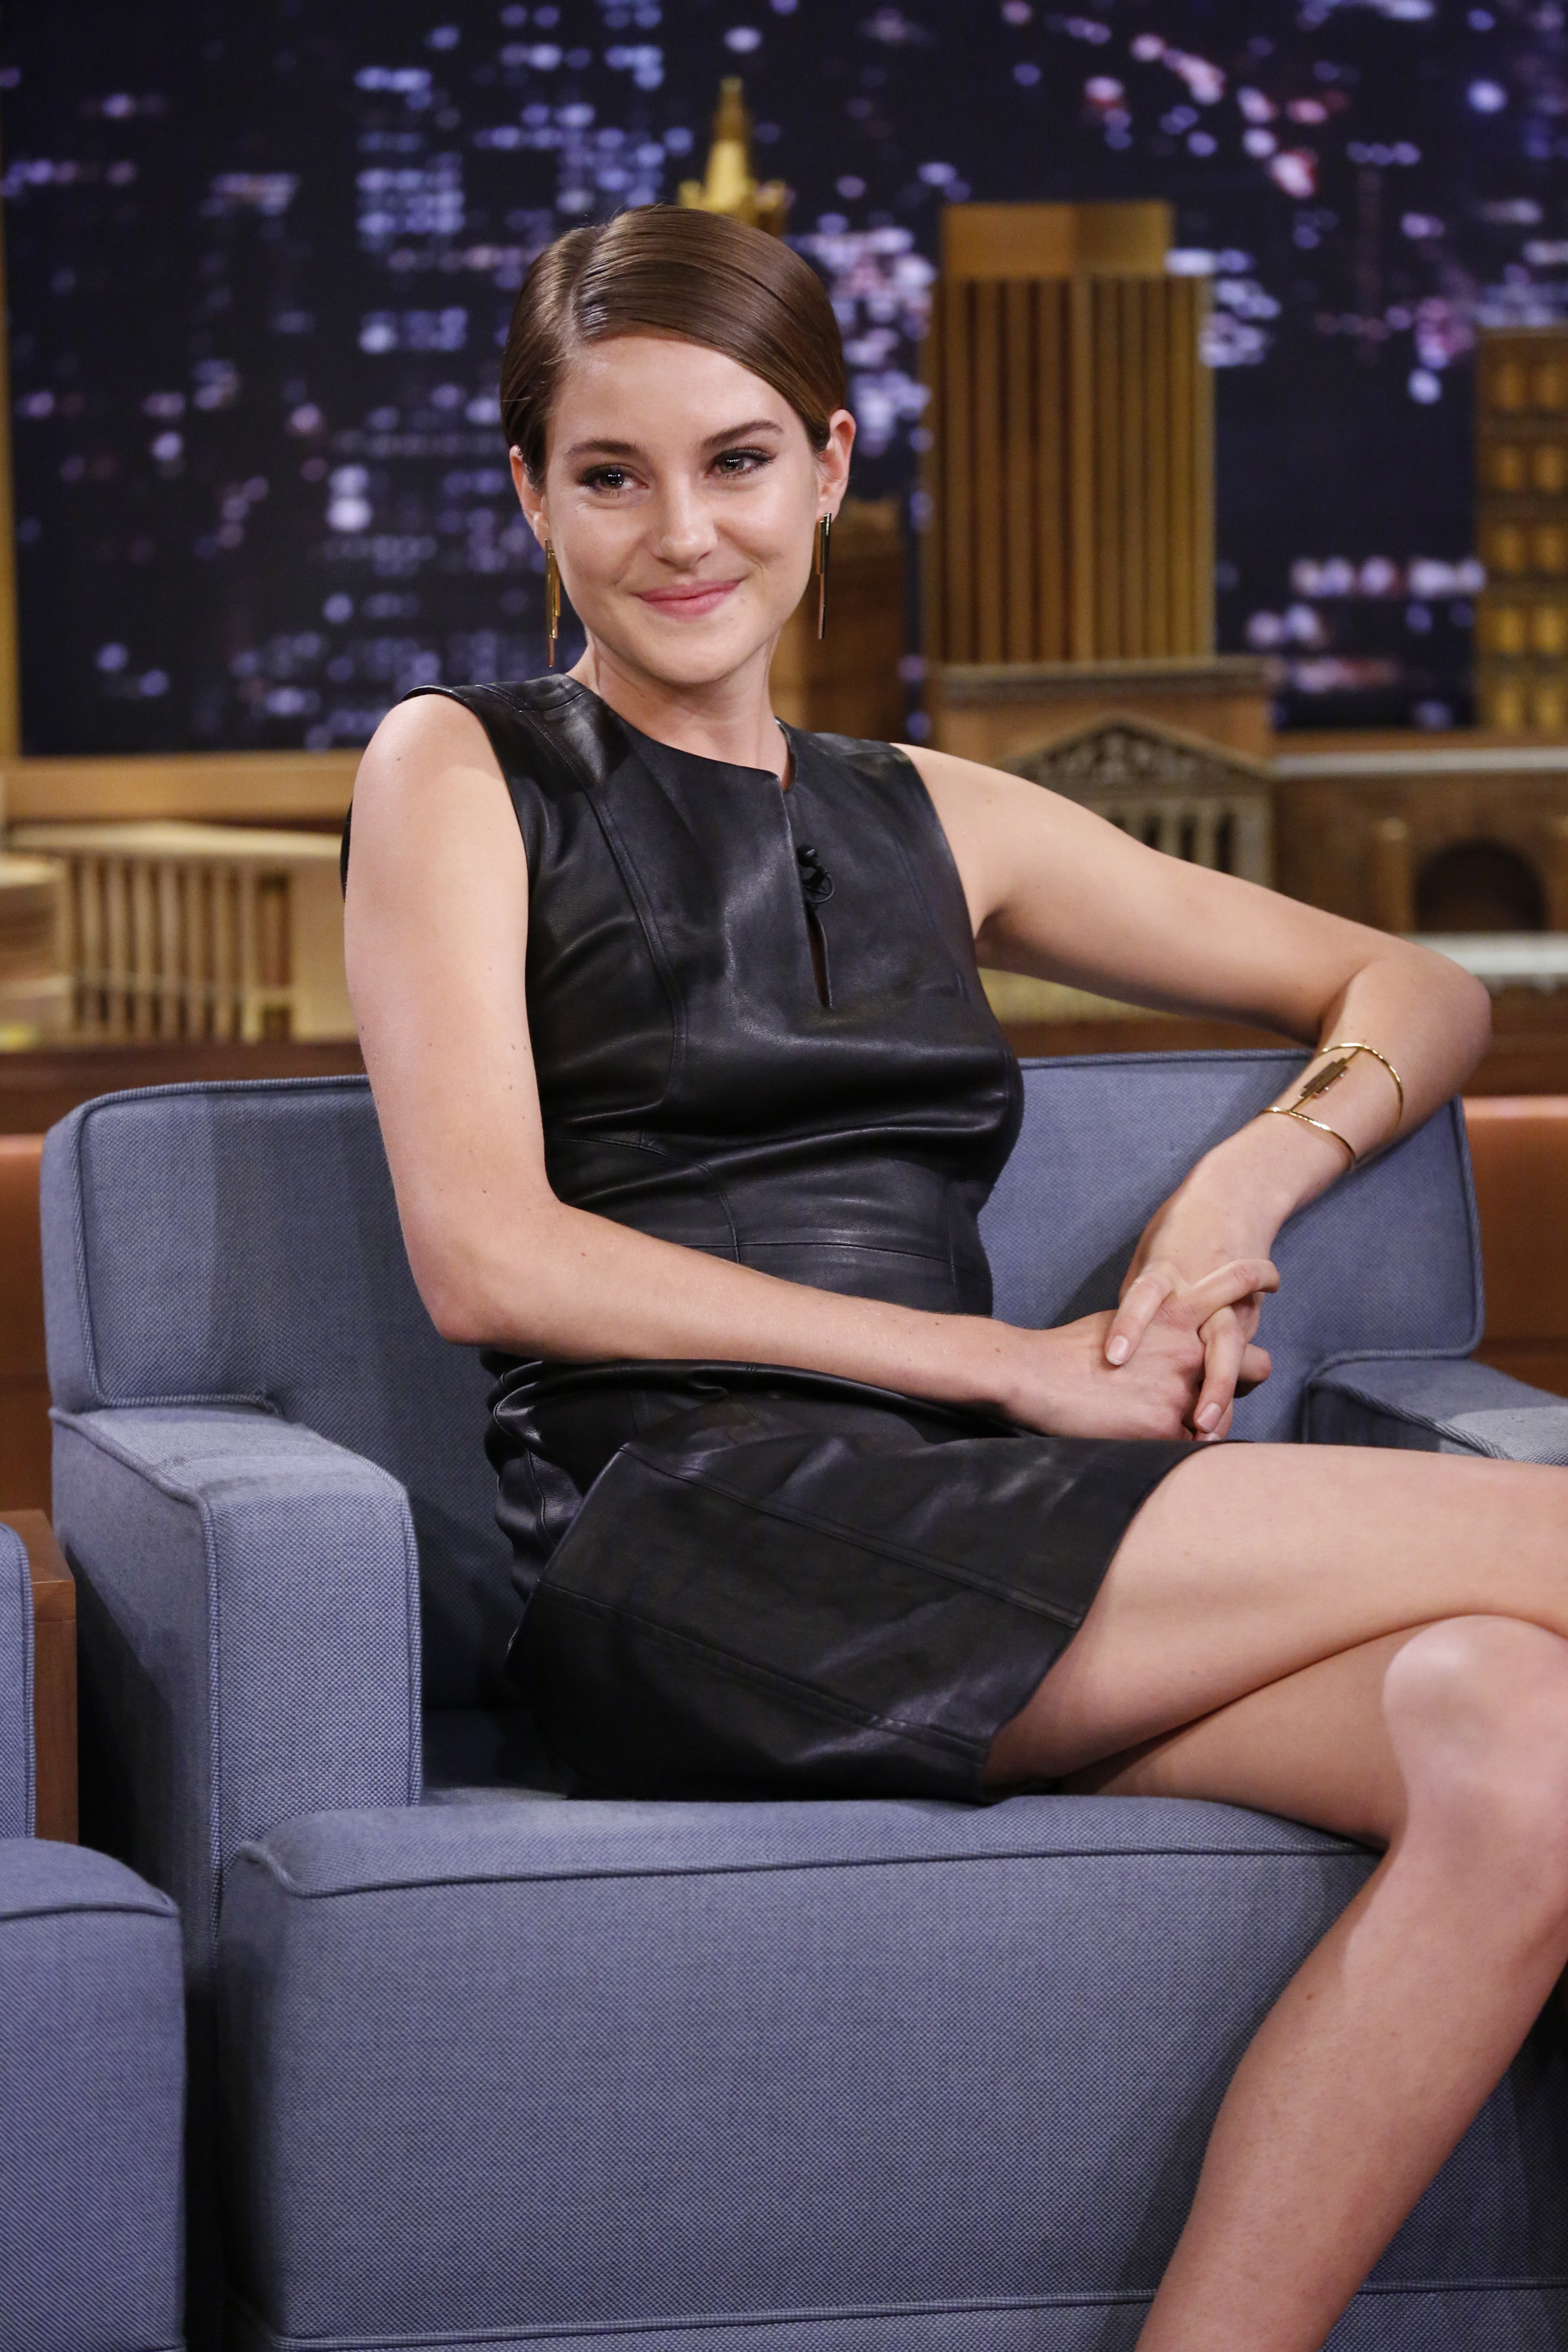 Shailene Woodley on The Tonight Show with Jimmy Fallon on March 12, 2014